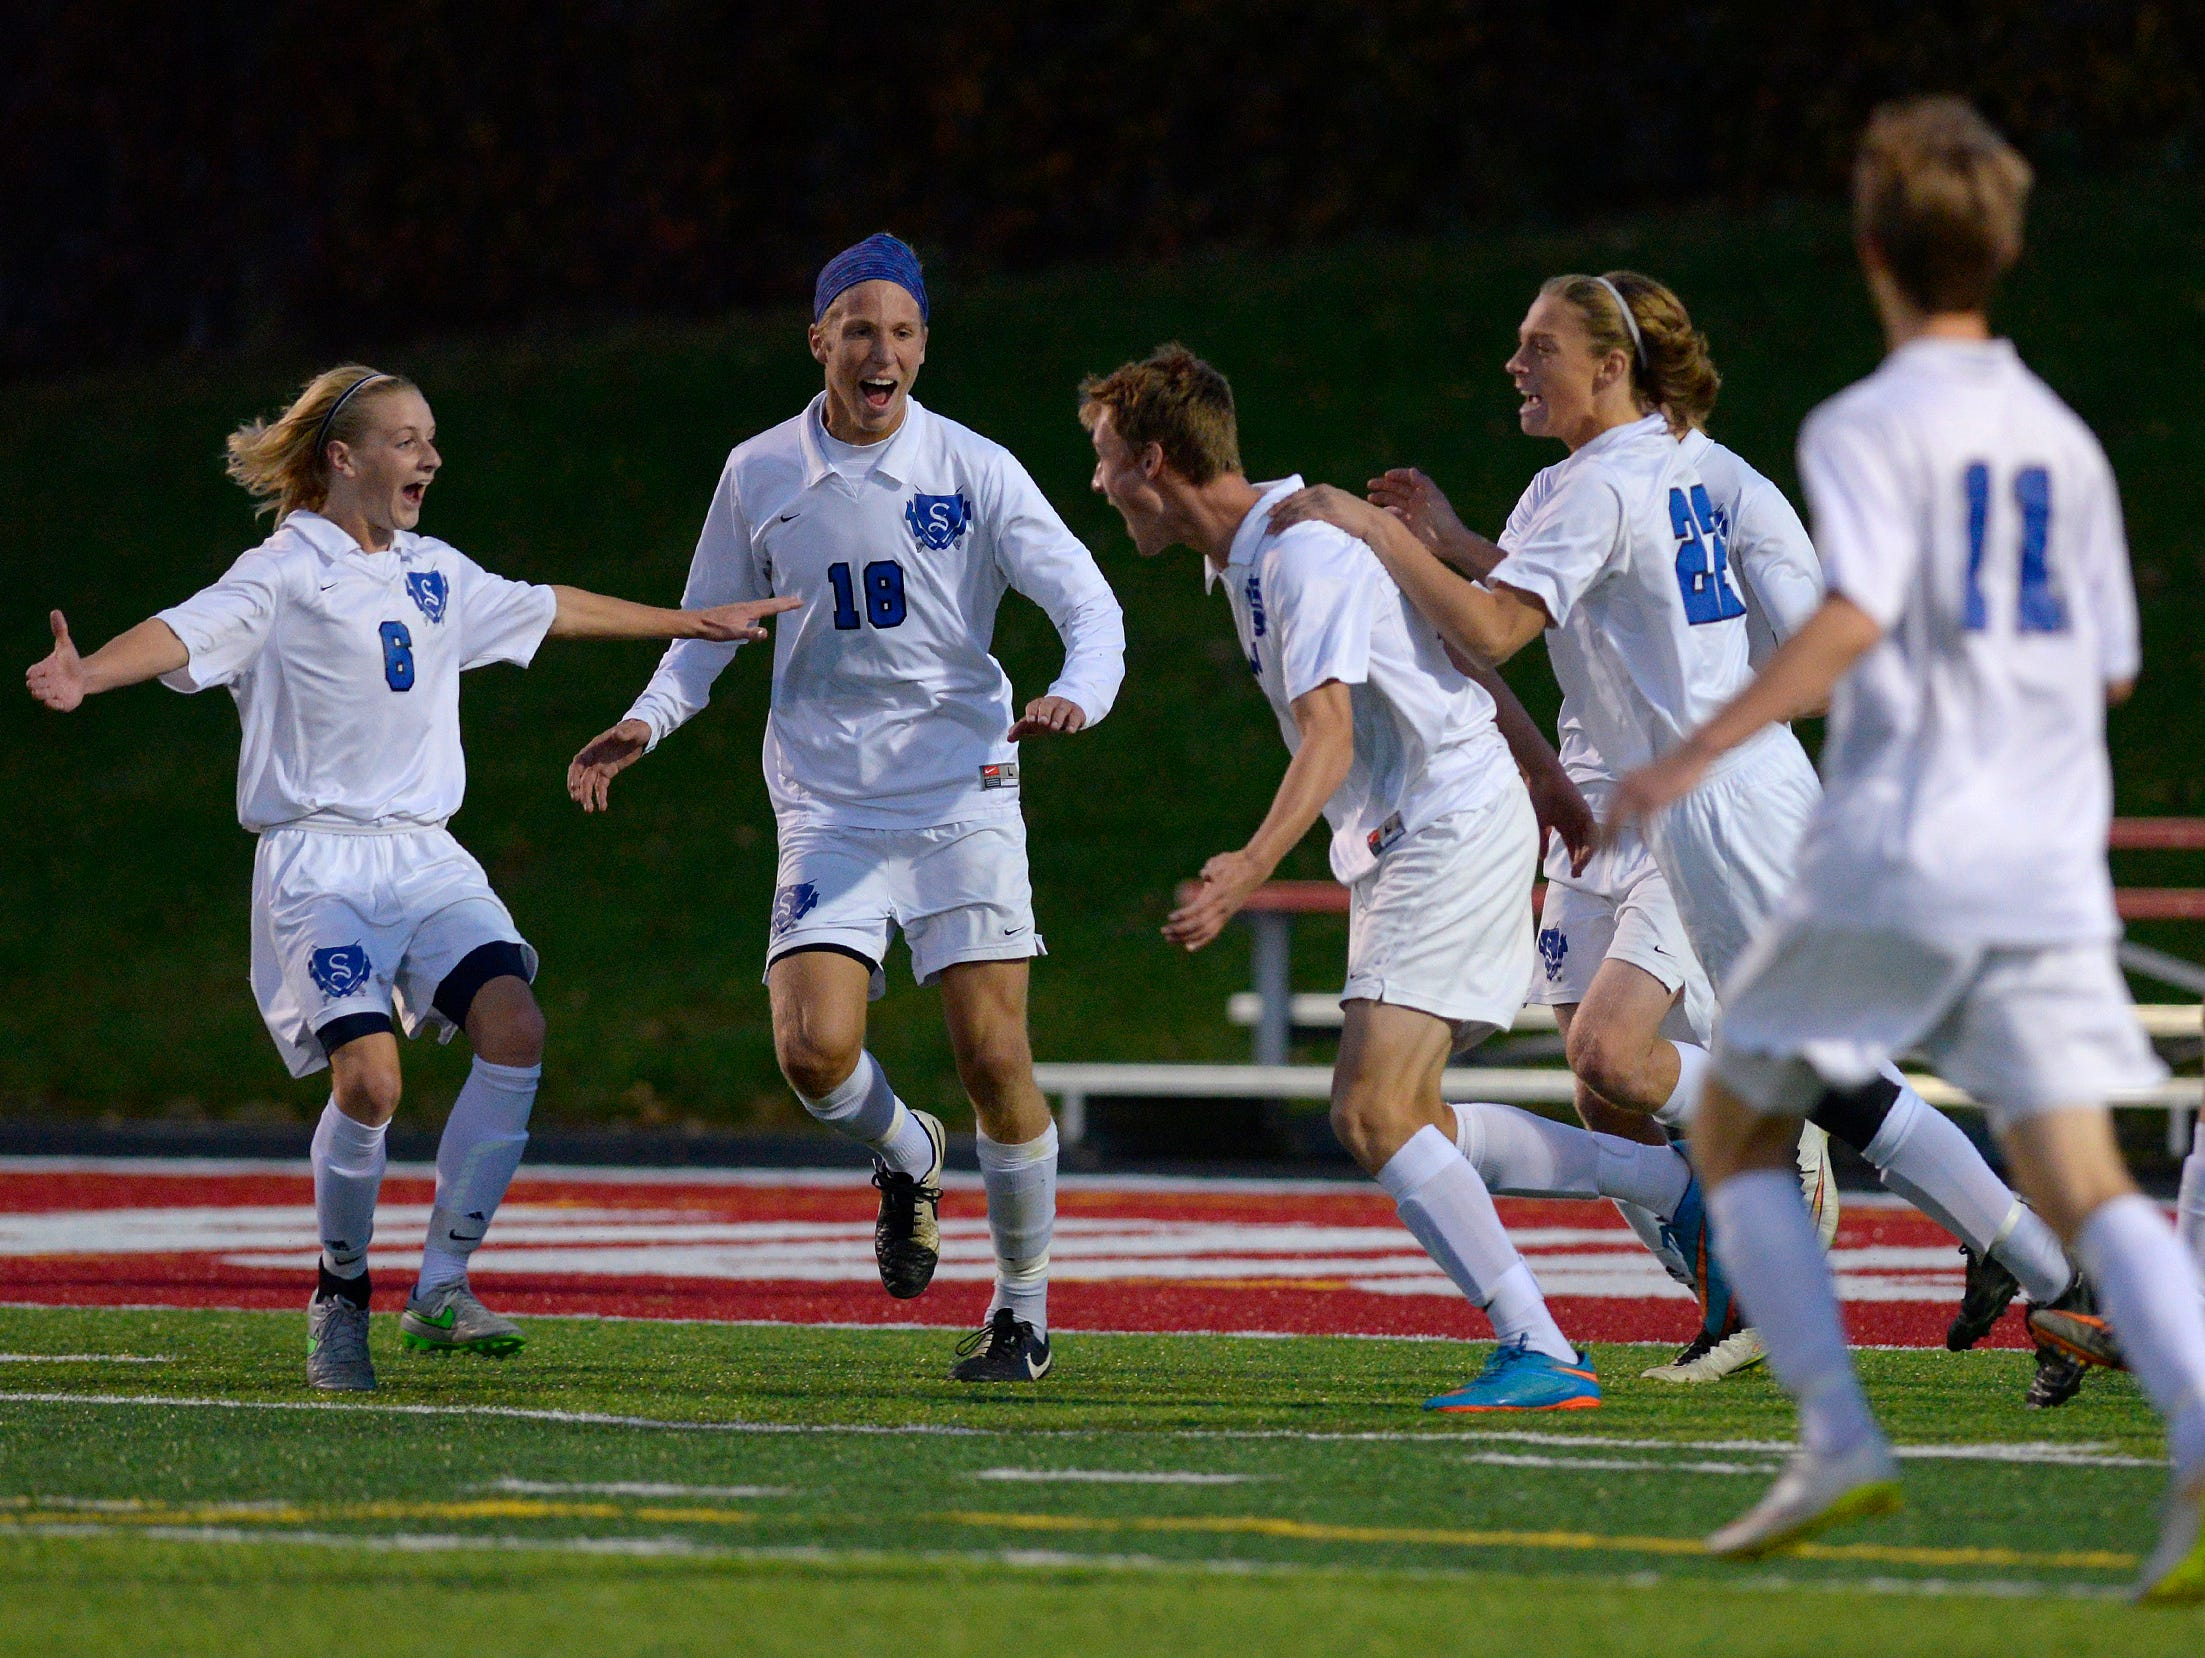 Sartell players celebrate their second goal of the game in the first half of their Sect. 8A championship game against St. Cloud Apollo Thursday, Oct. 22 at Husky Stadium.